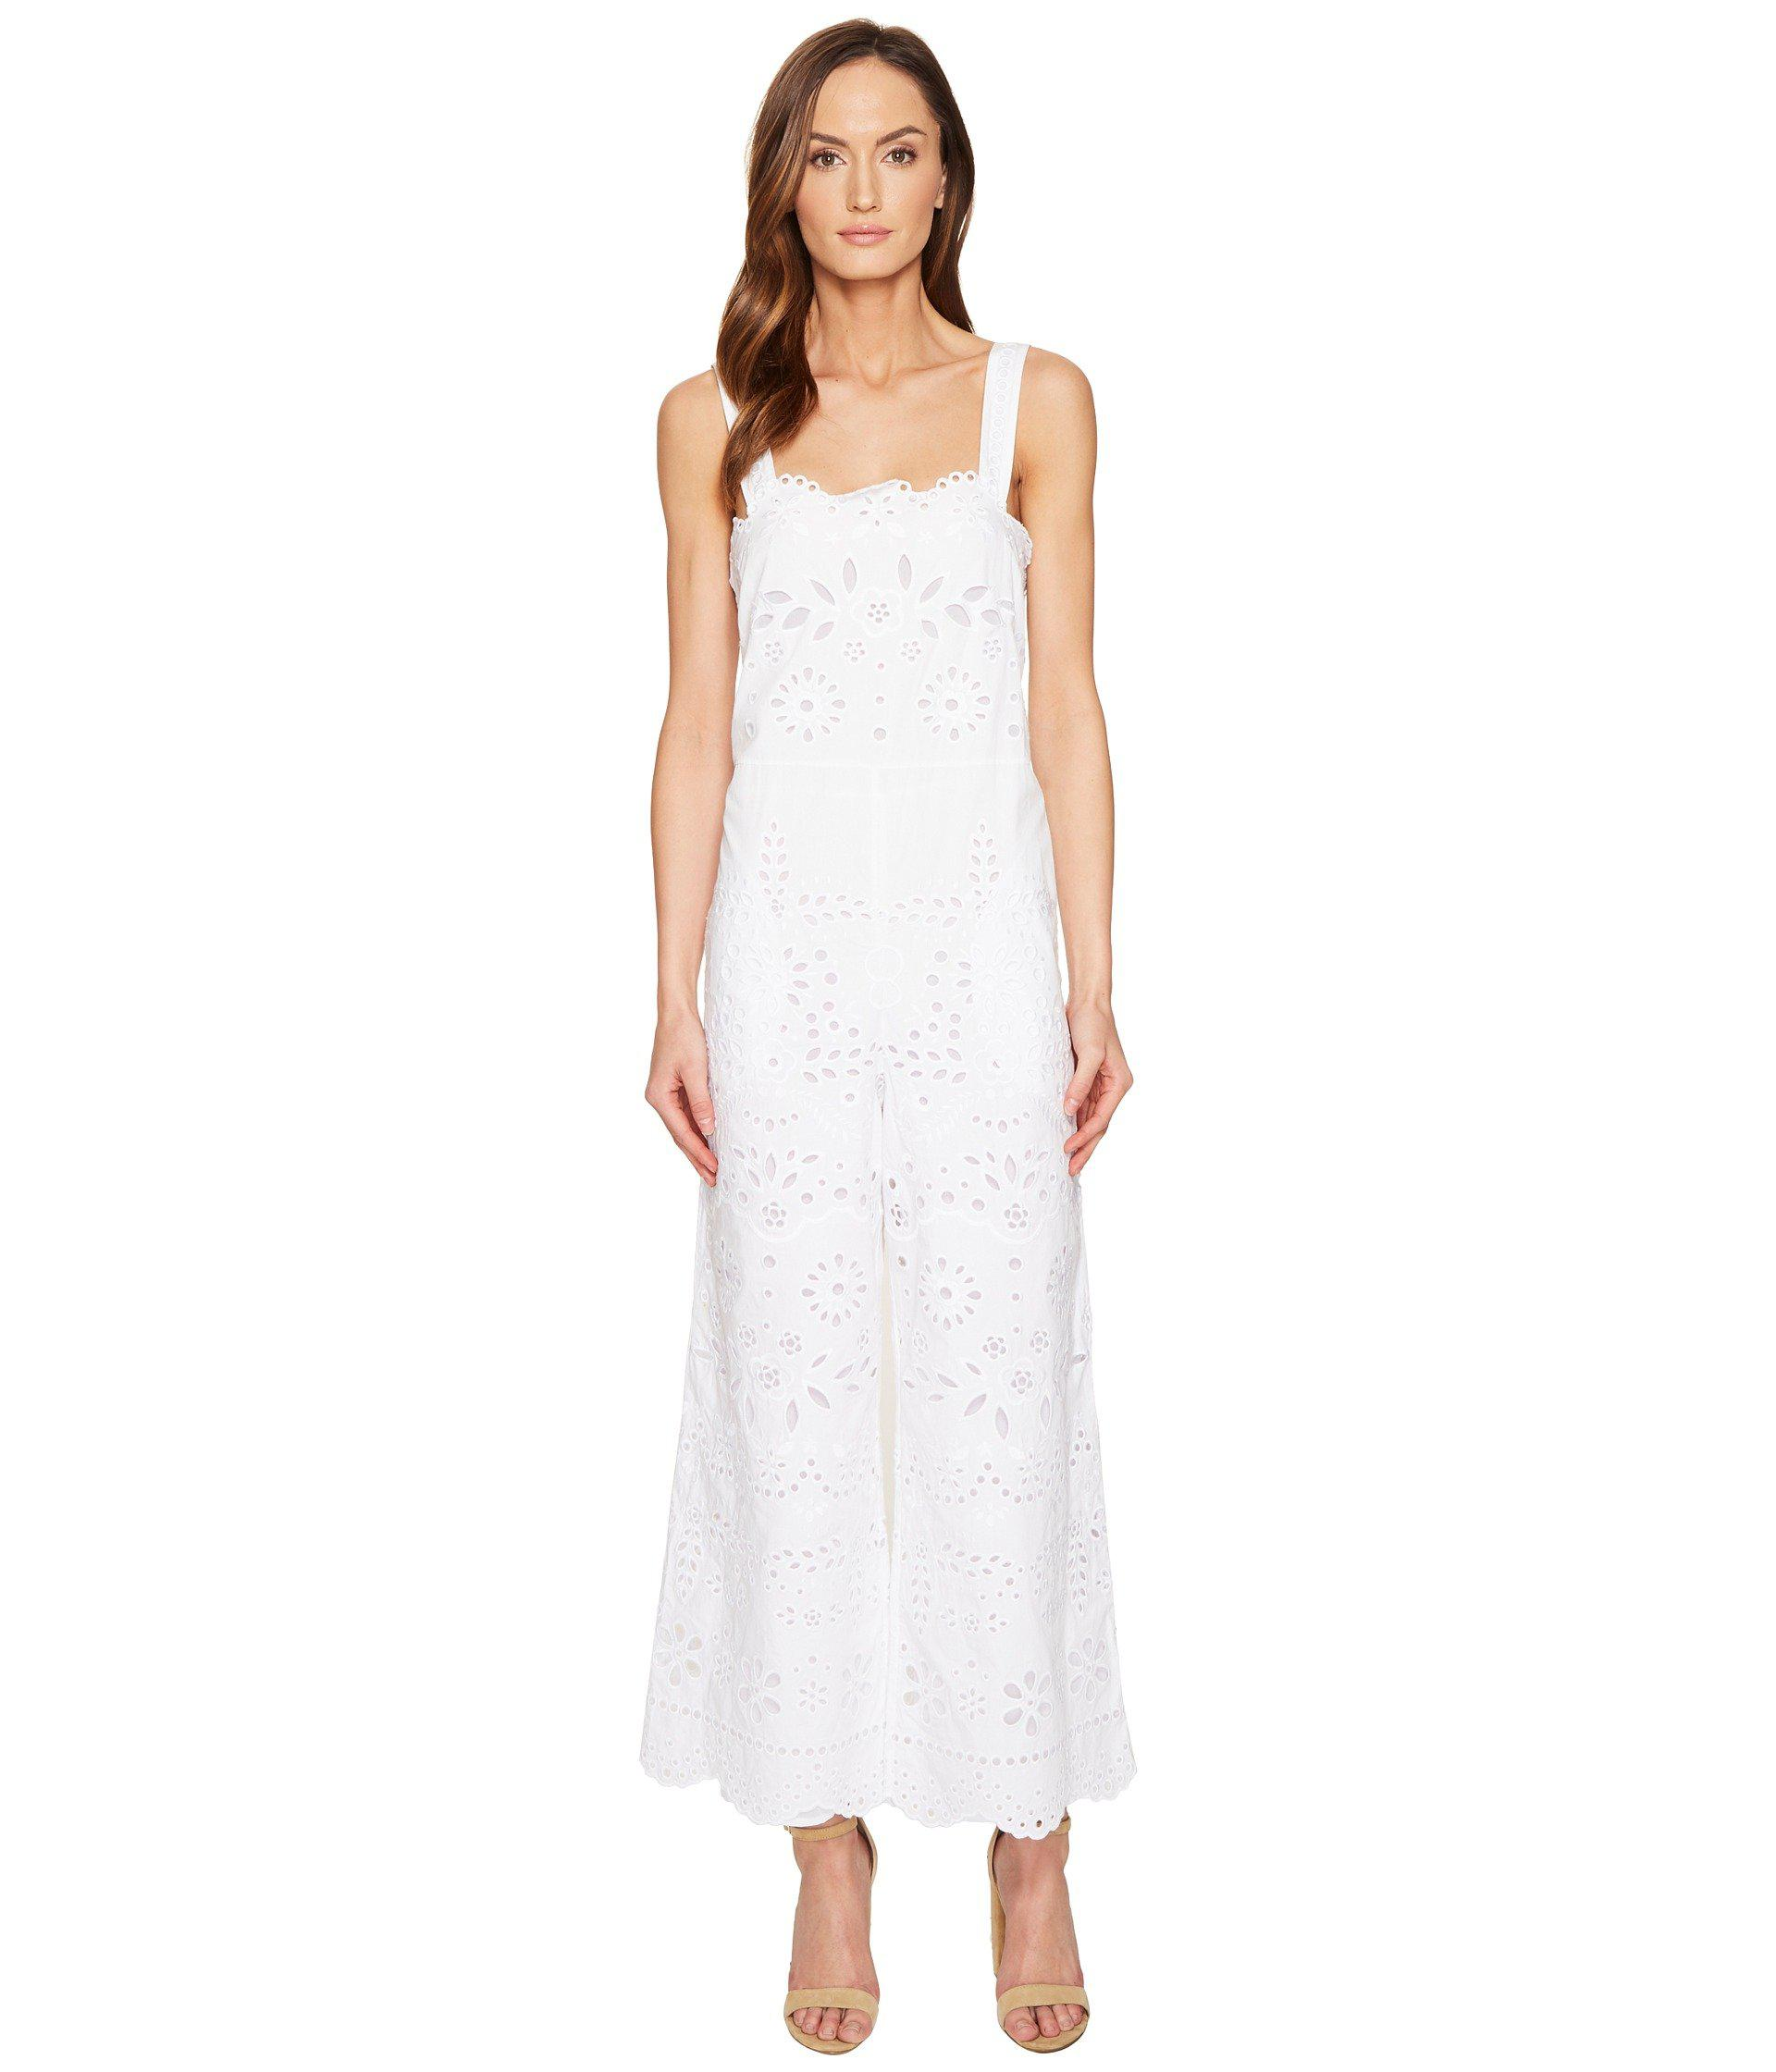 342a0cc9e5d7 RED Valentino. Women s White Cotton Muslin And Sangallo Embroidery Jumpsuit